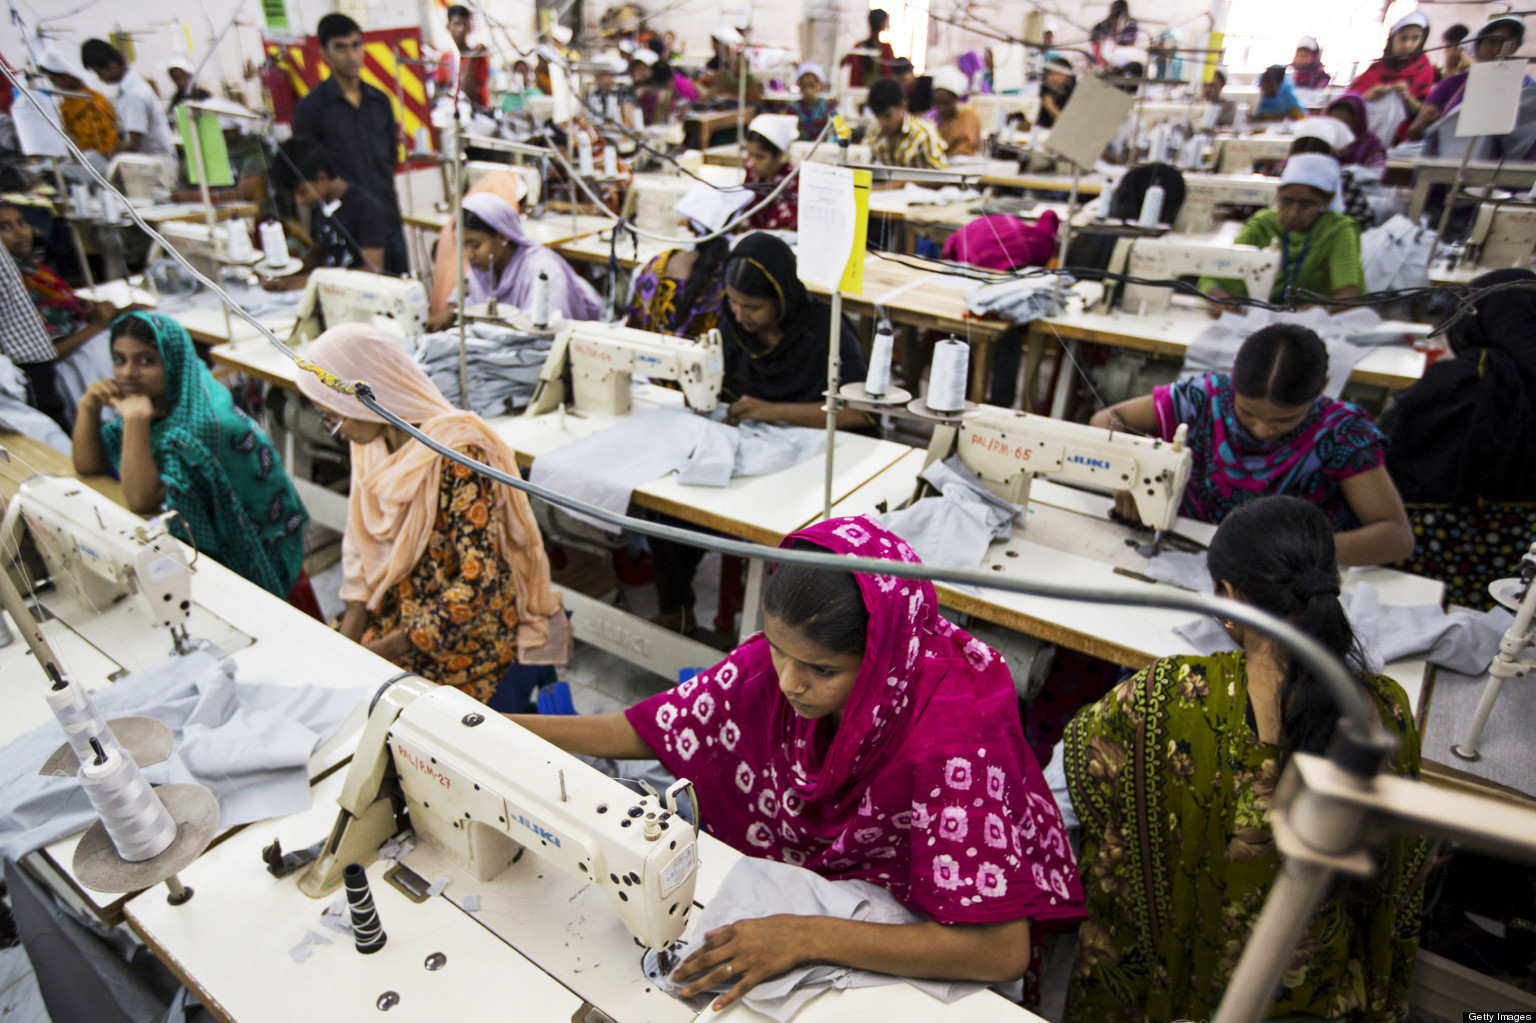 Apparel sector expecting good exposure from u2018Make in Indiau2019 initiative